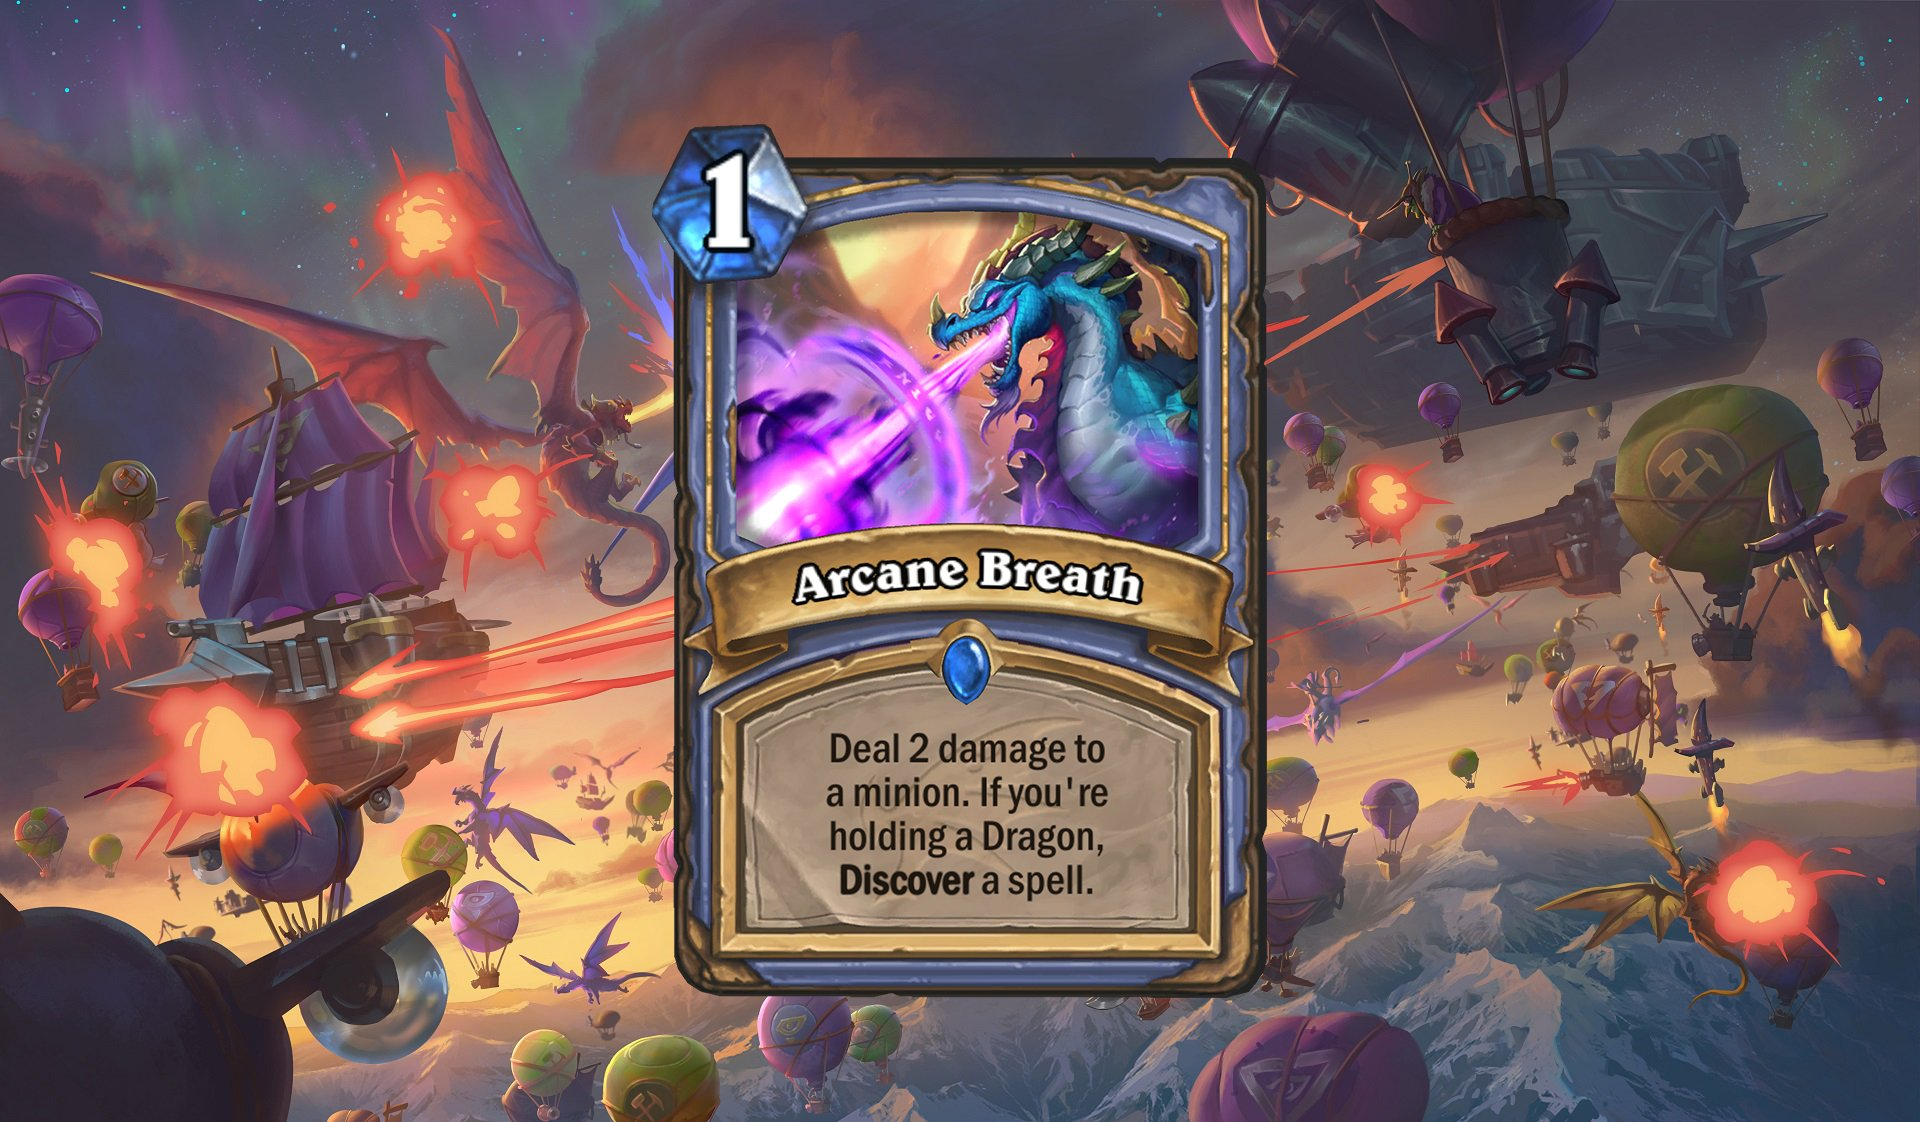 Hearthstone - Arcane Breath